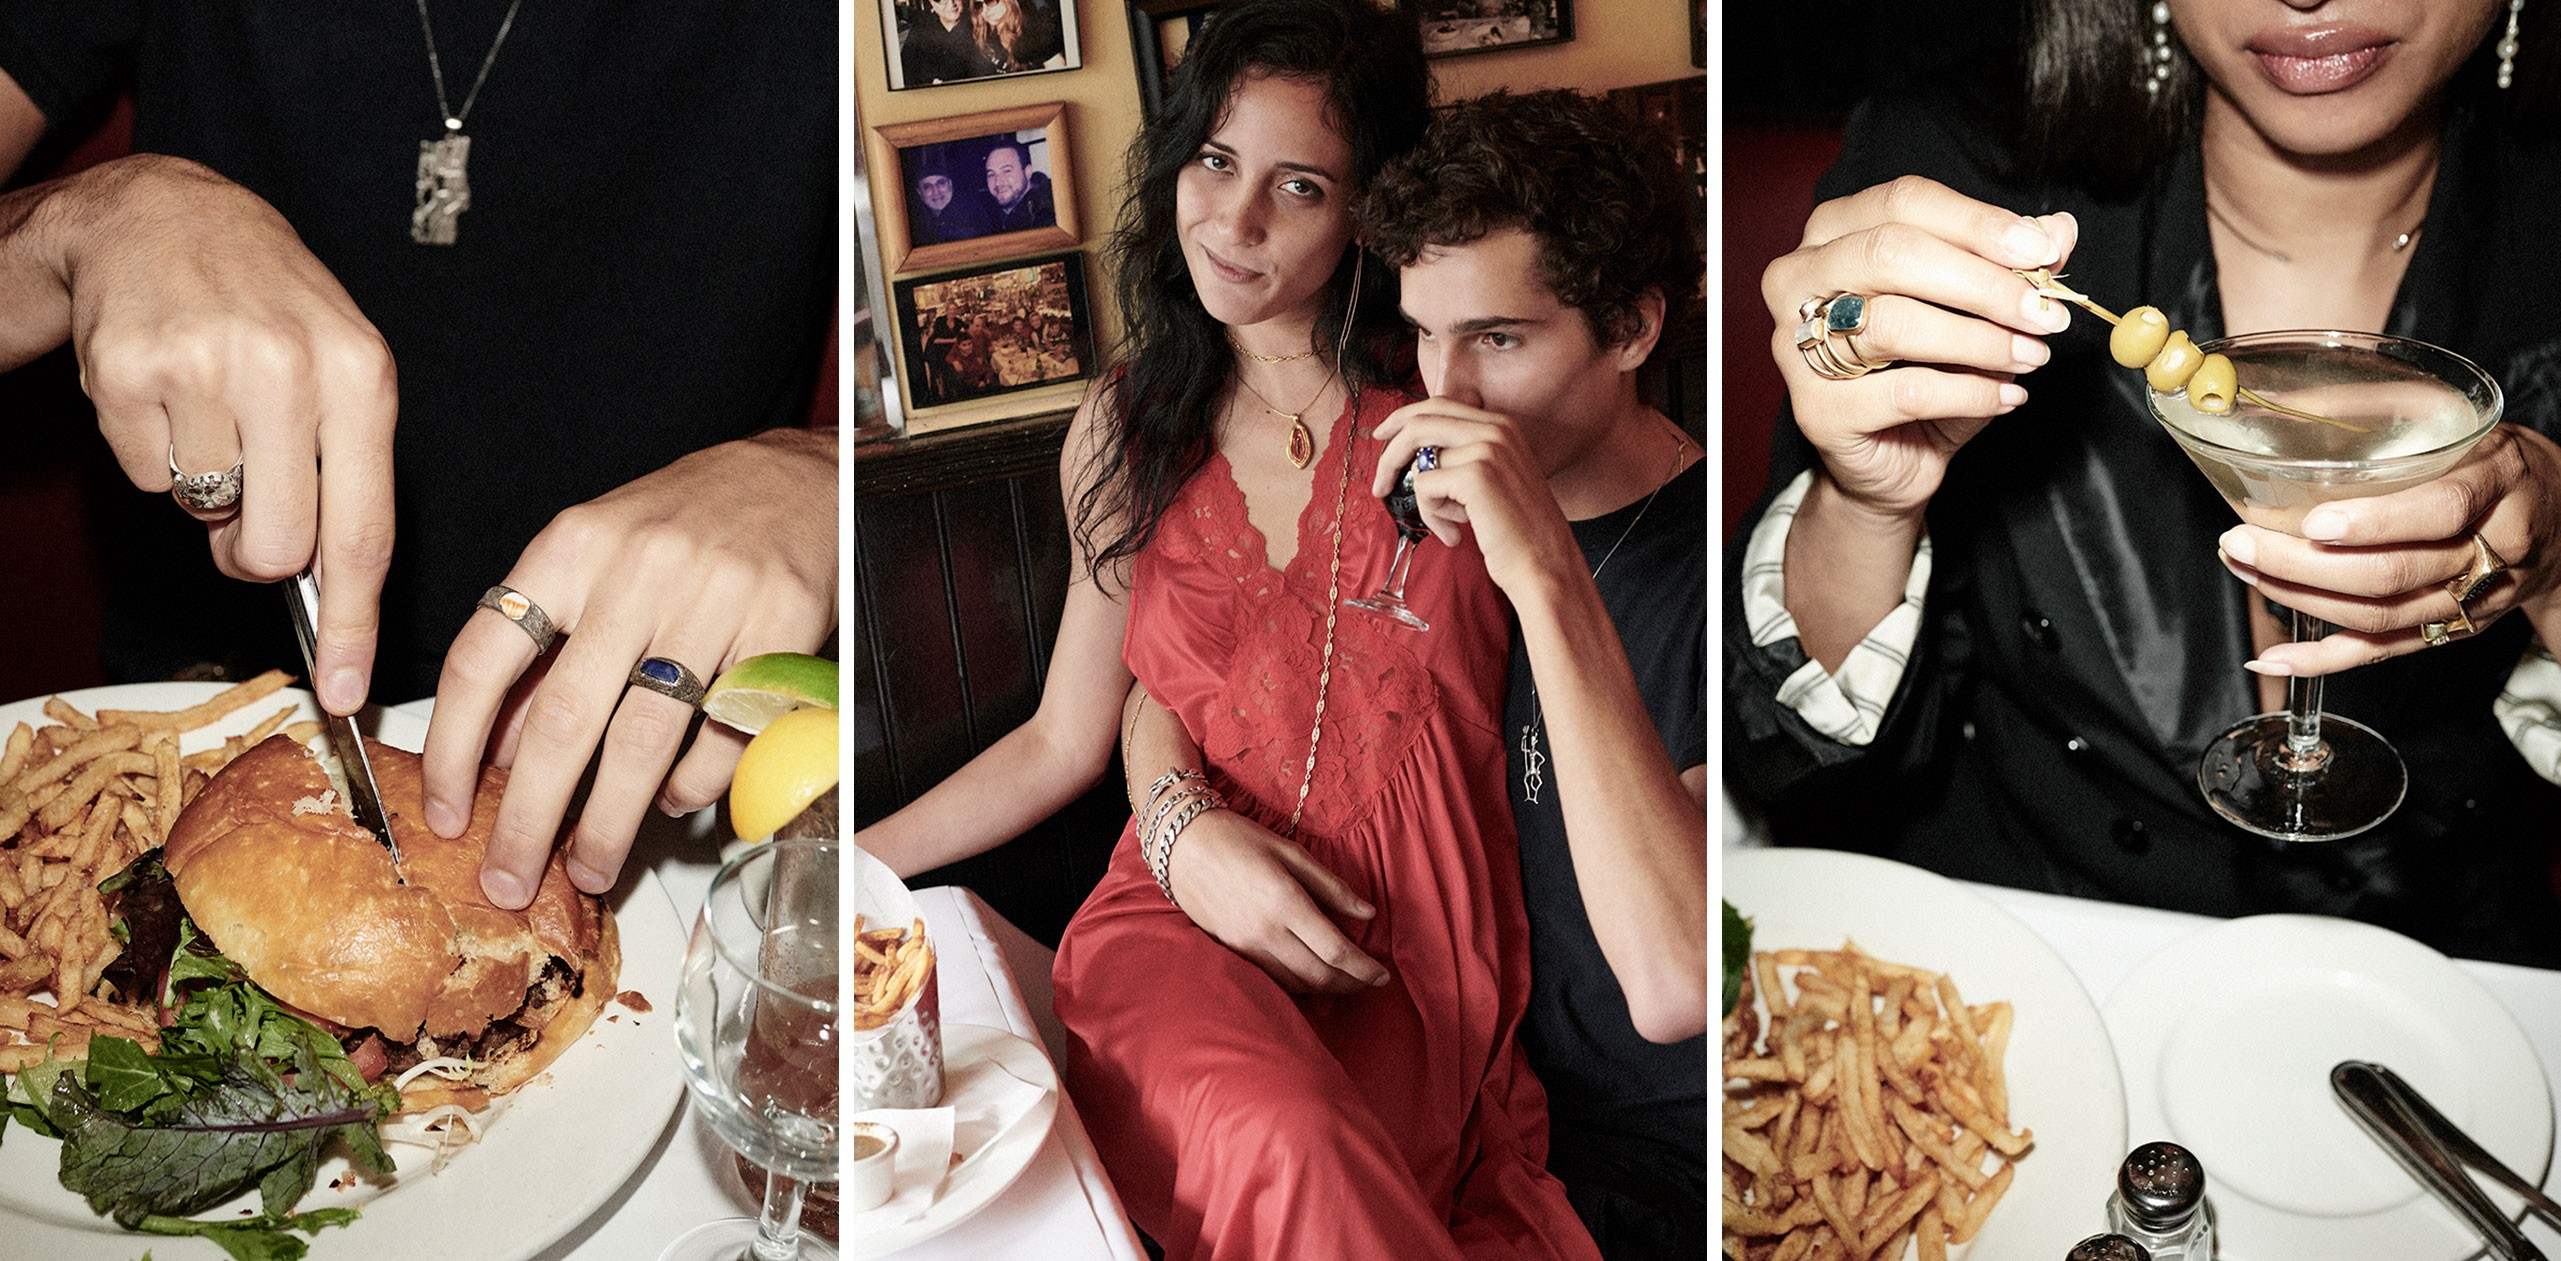 scenes from lucien nyc, a burger, a couple, a woman and a martini, all decked out in jewelry